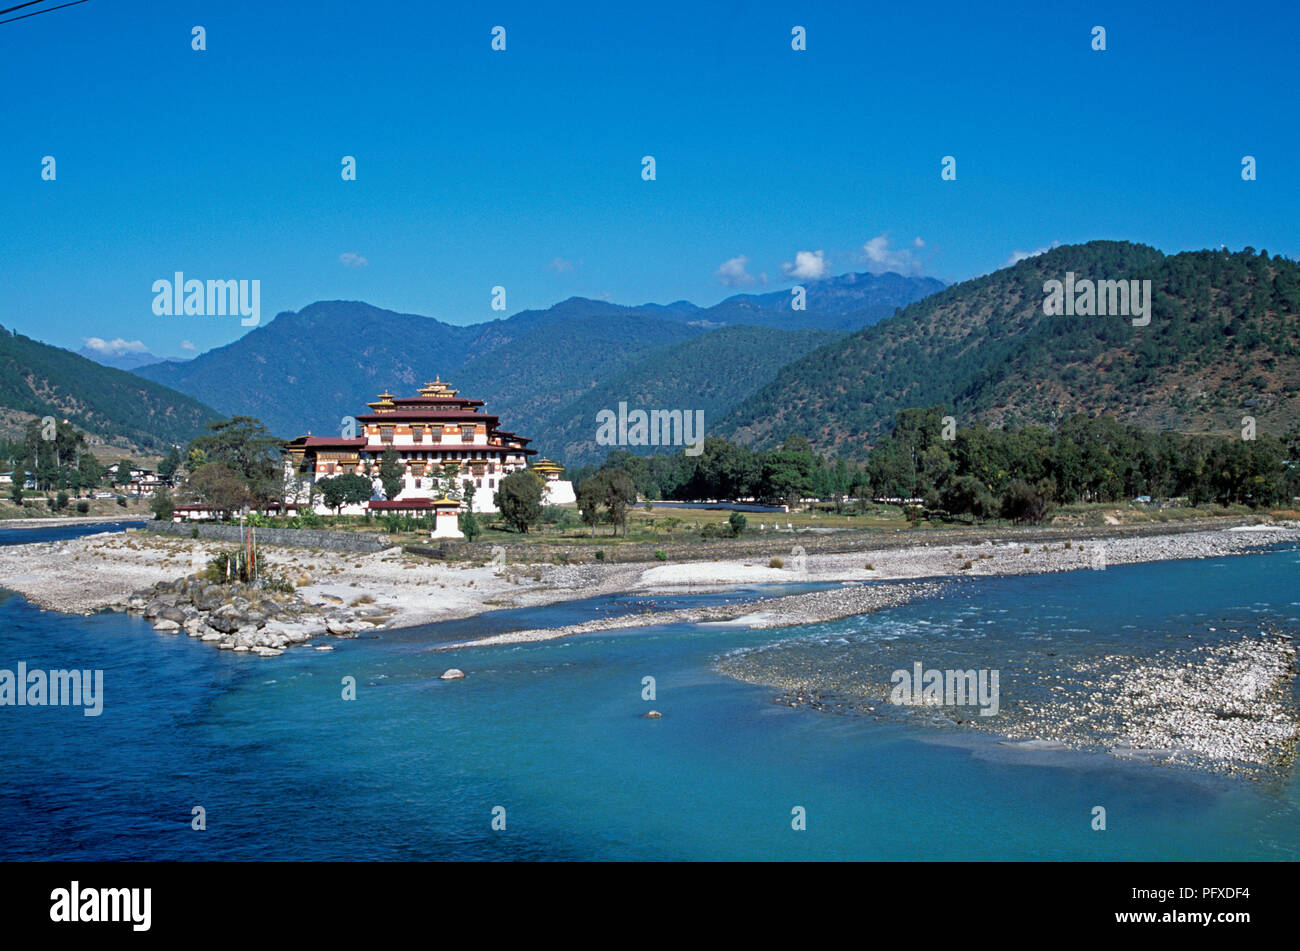 Punakha Dzong at the confluence of the Mo Chhu and Pho Chhu rivers in Punakha valley, Bhutan - Stock Image